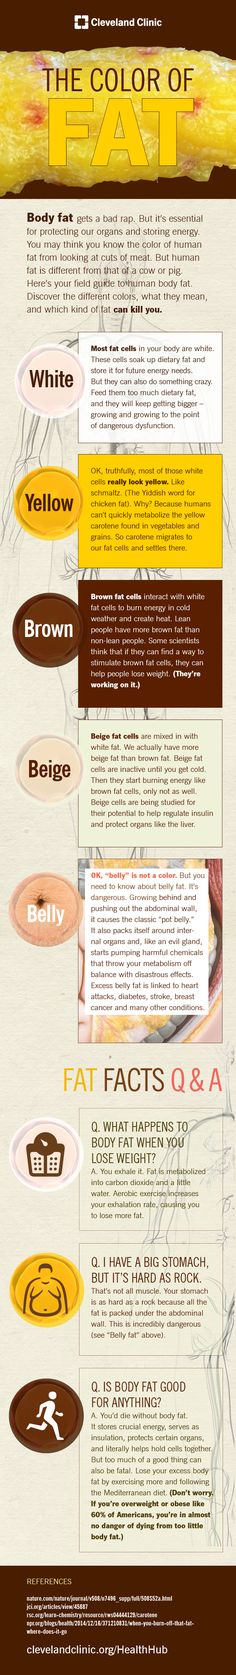 5 different types of body fat and how they help and harm your health. #bodyfat #diet #infographic